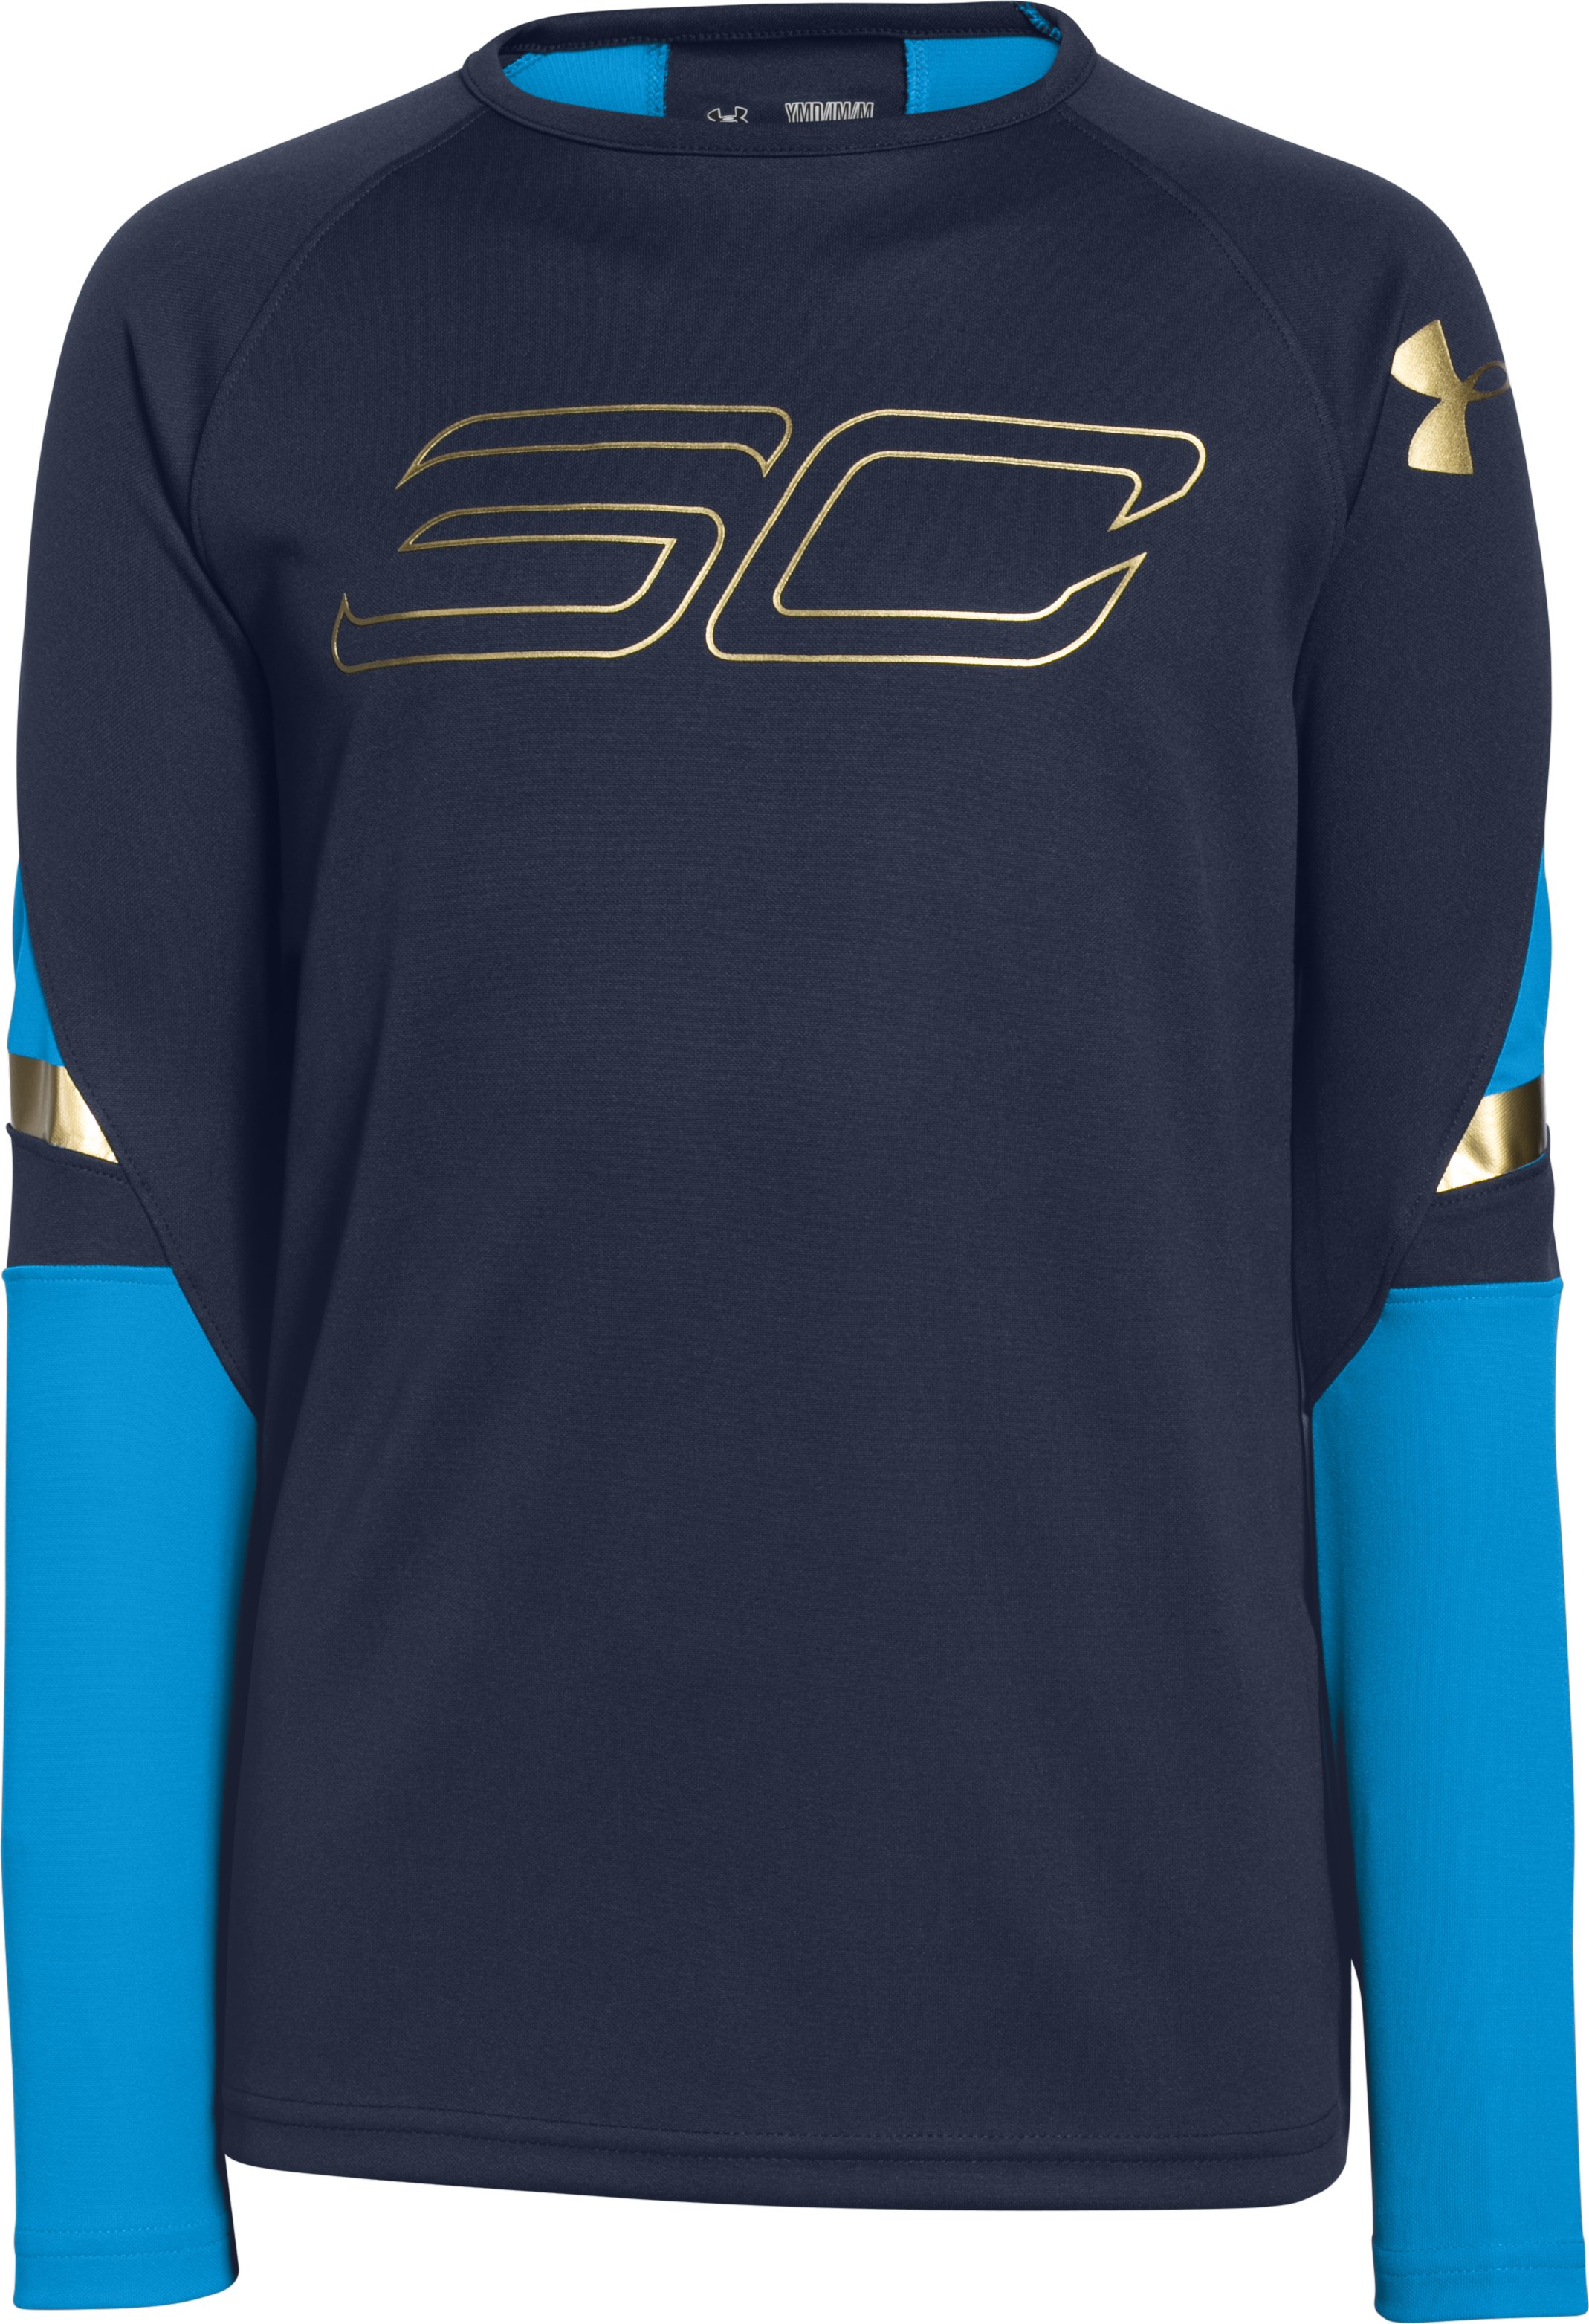 Boys' SC30 Heatseeker Shooting Shirt, Midnight Navy